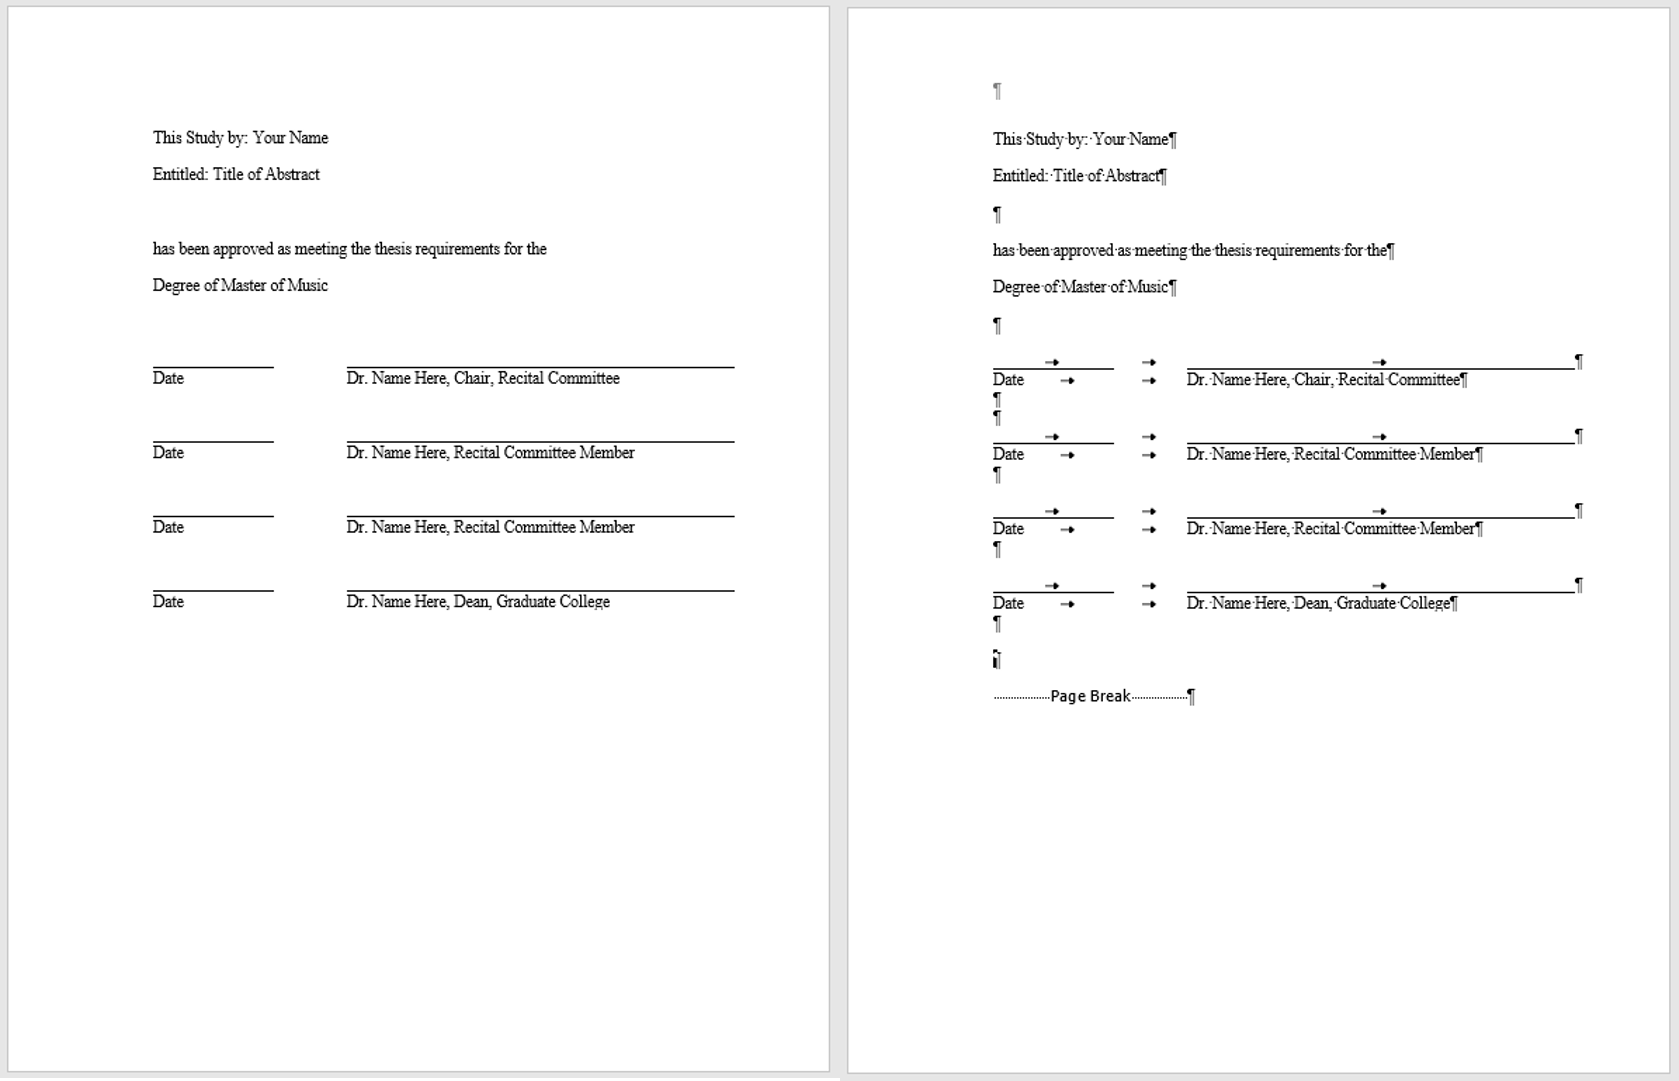 Examples of a properly formatted abstract approval page with and without nonprinting characters